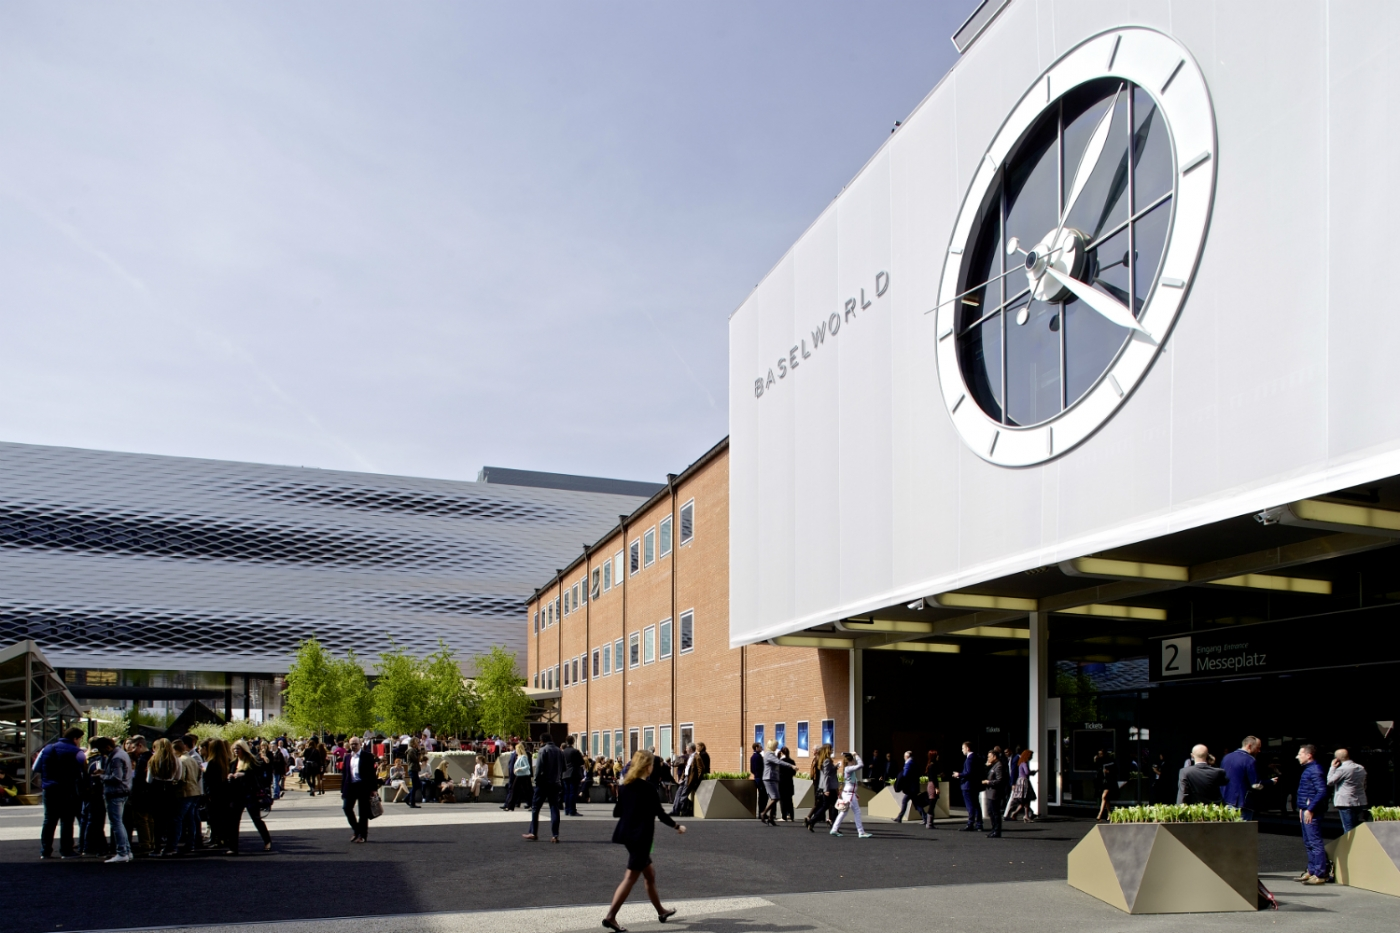 baselworld 2019 The Best Of The Watch Industry at Baselworld 2019 The Best Of The Watch Industry at Baselworld 2019 feature 1400x933